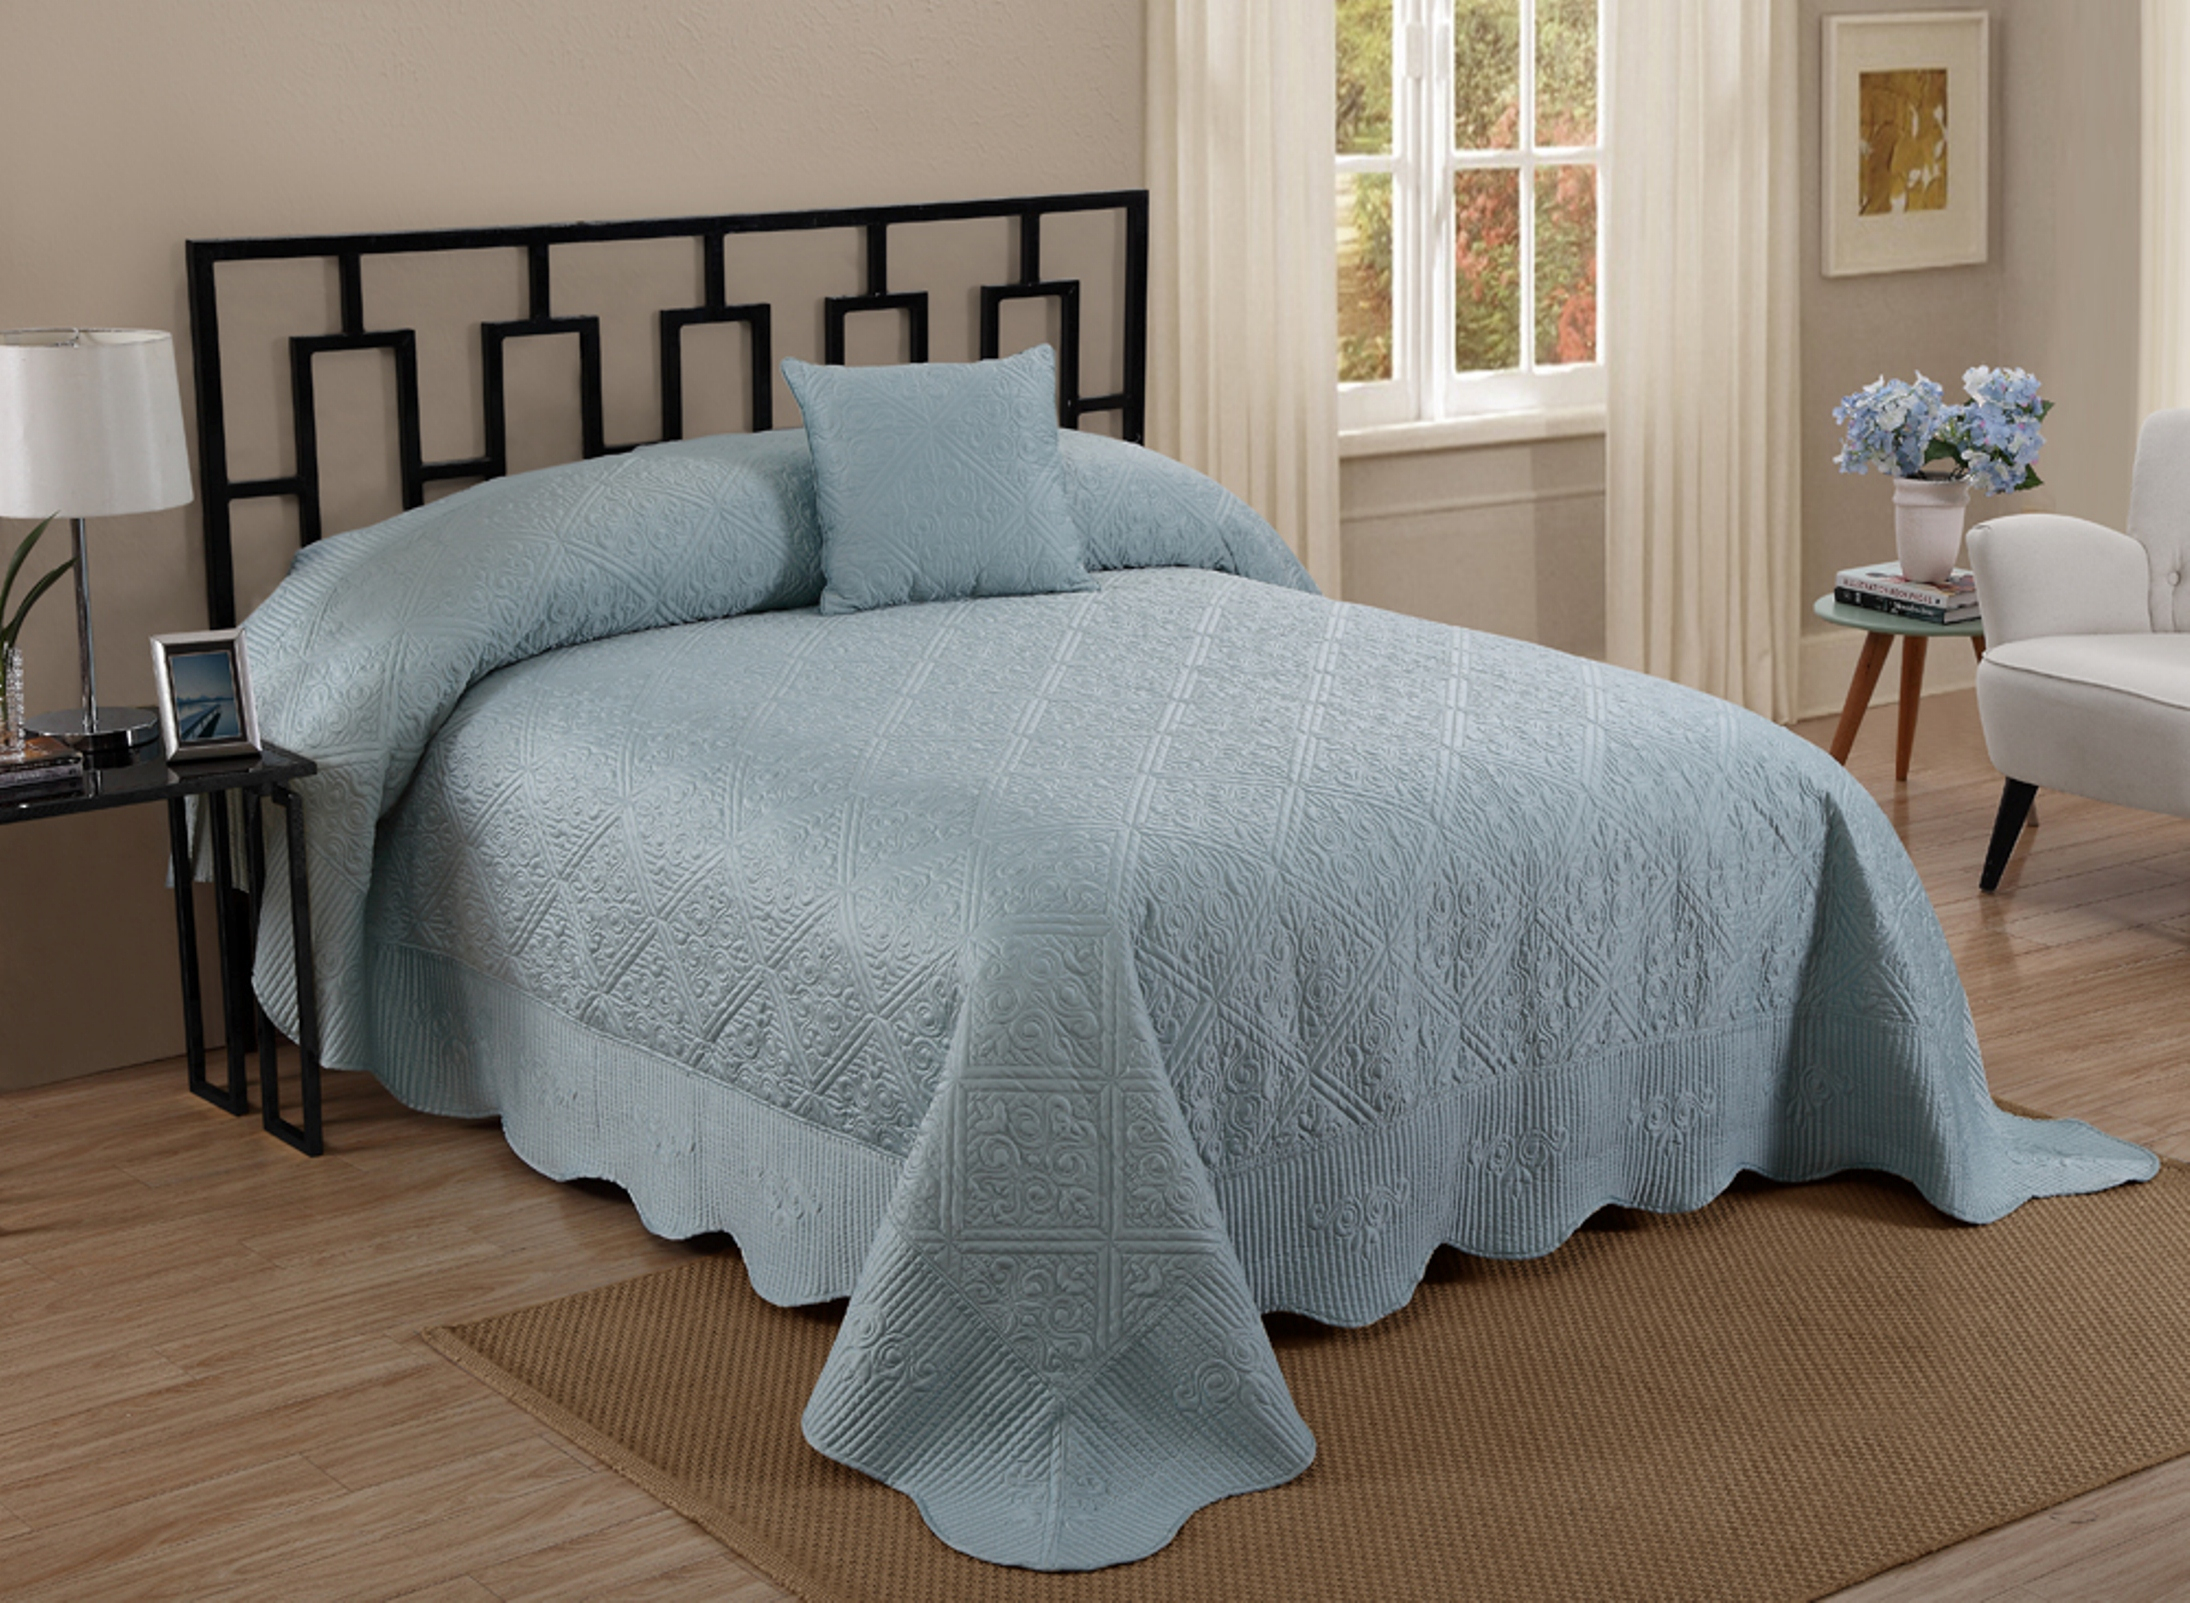 Bedroom: Sears Comforter Sets For Stylish And Cozy Bedroom